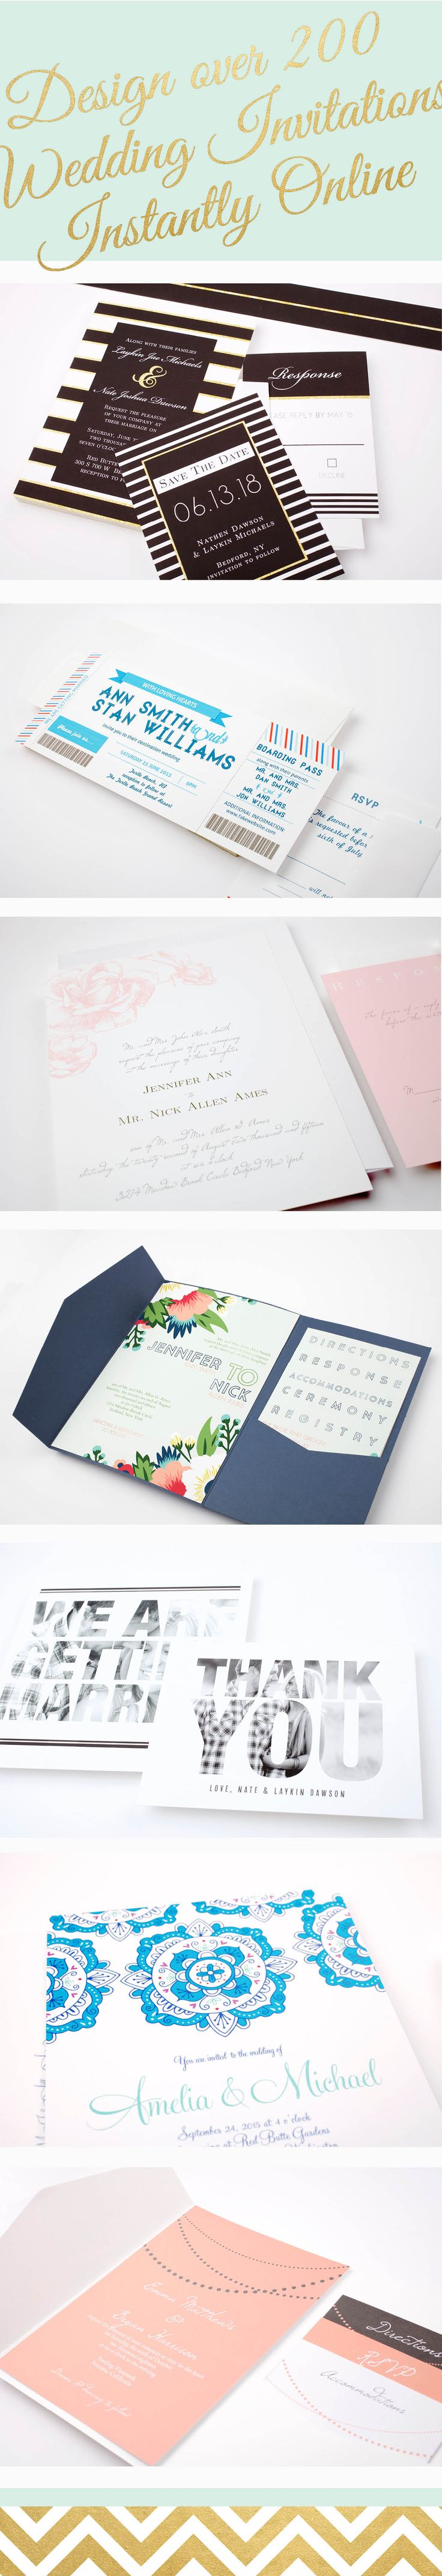 Full customizable wedding invitation sets in over 150 different colors.